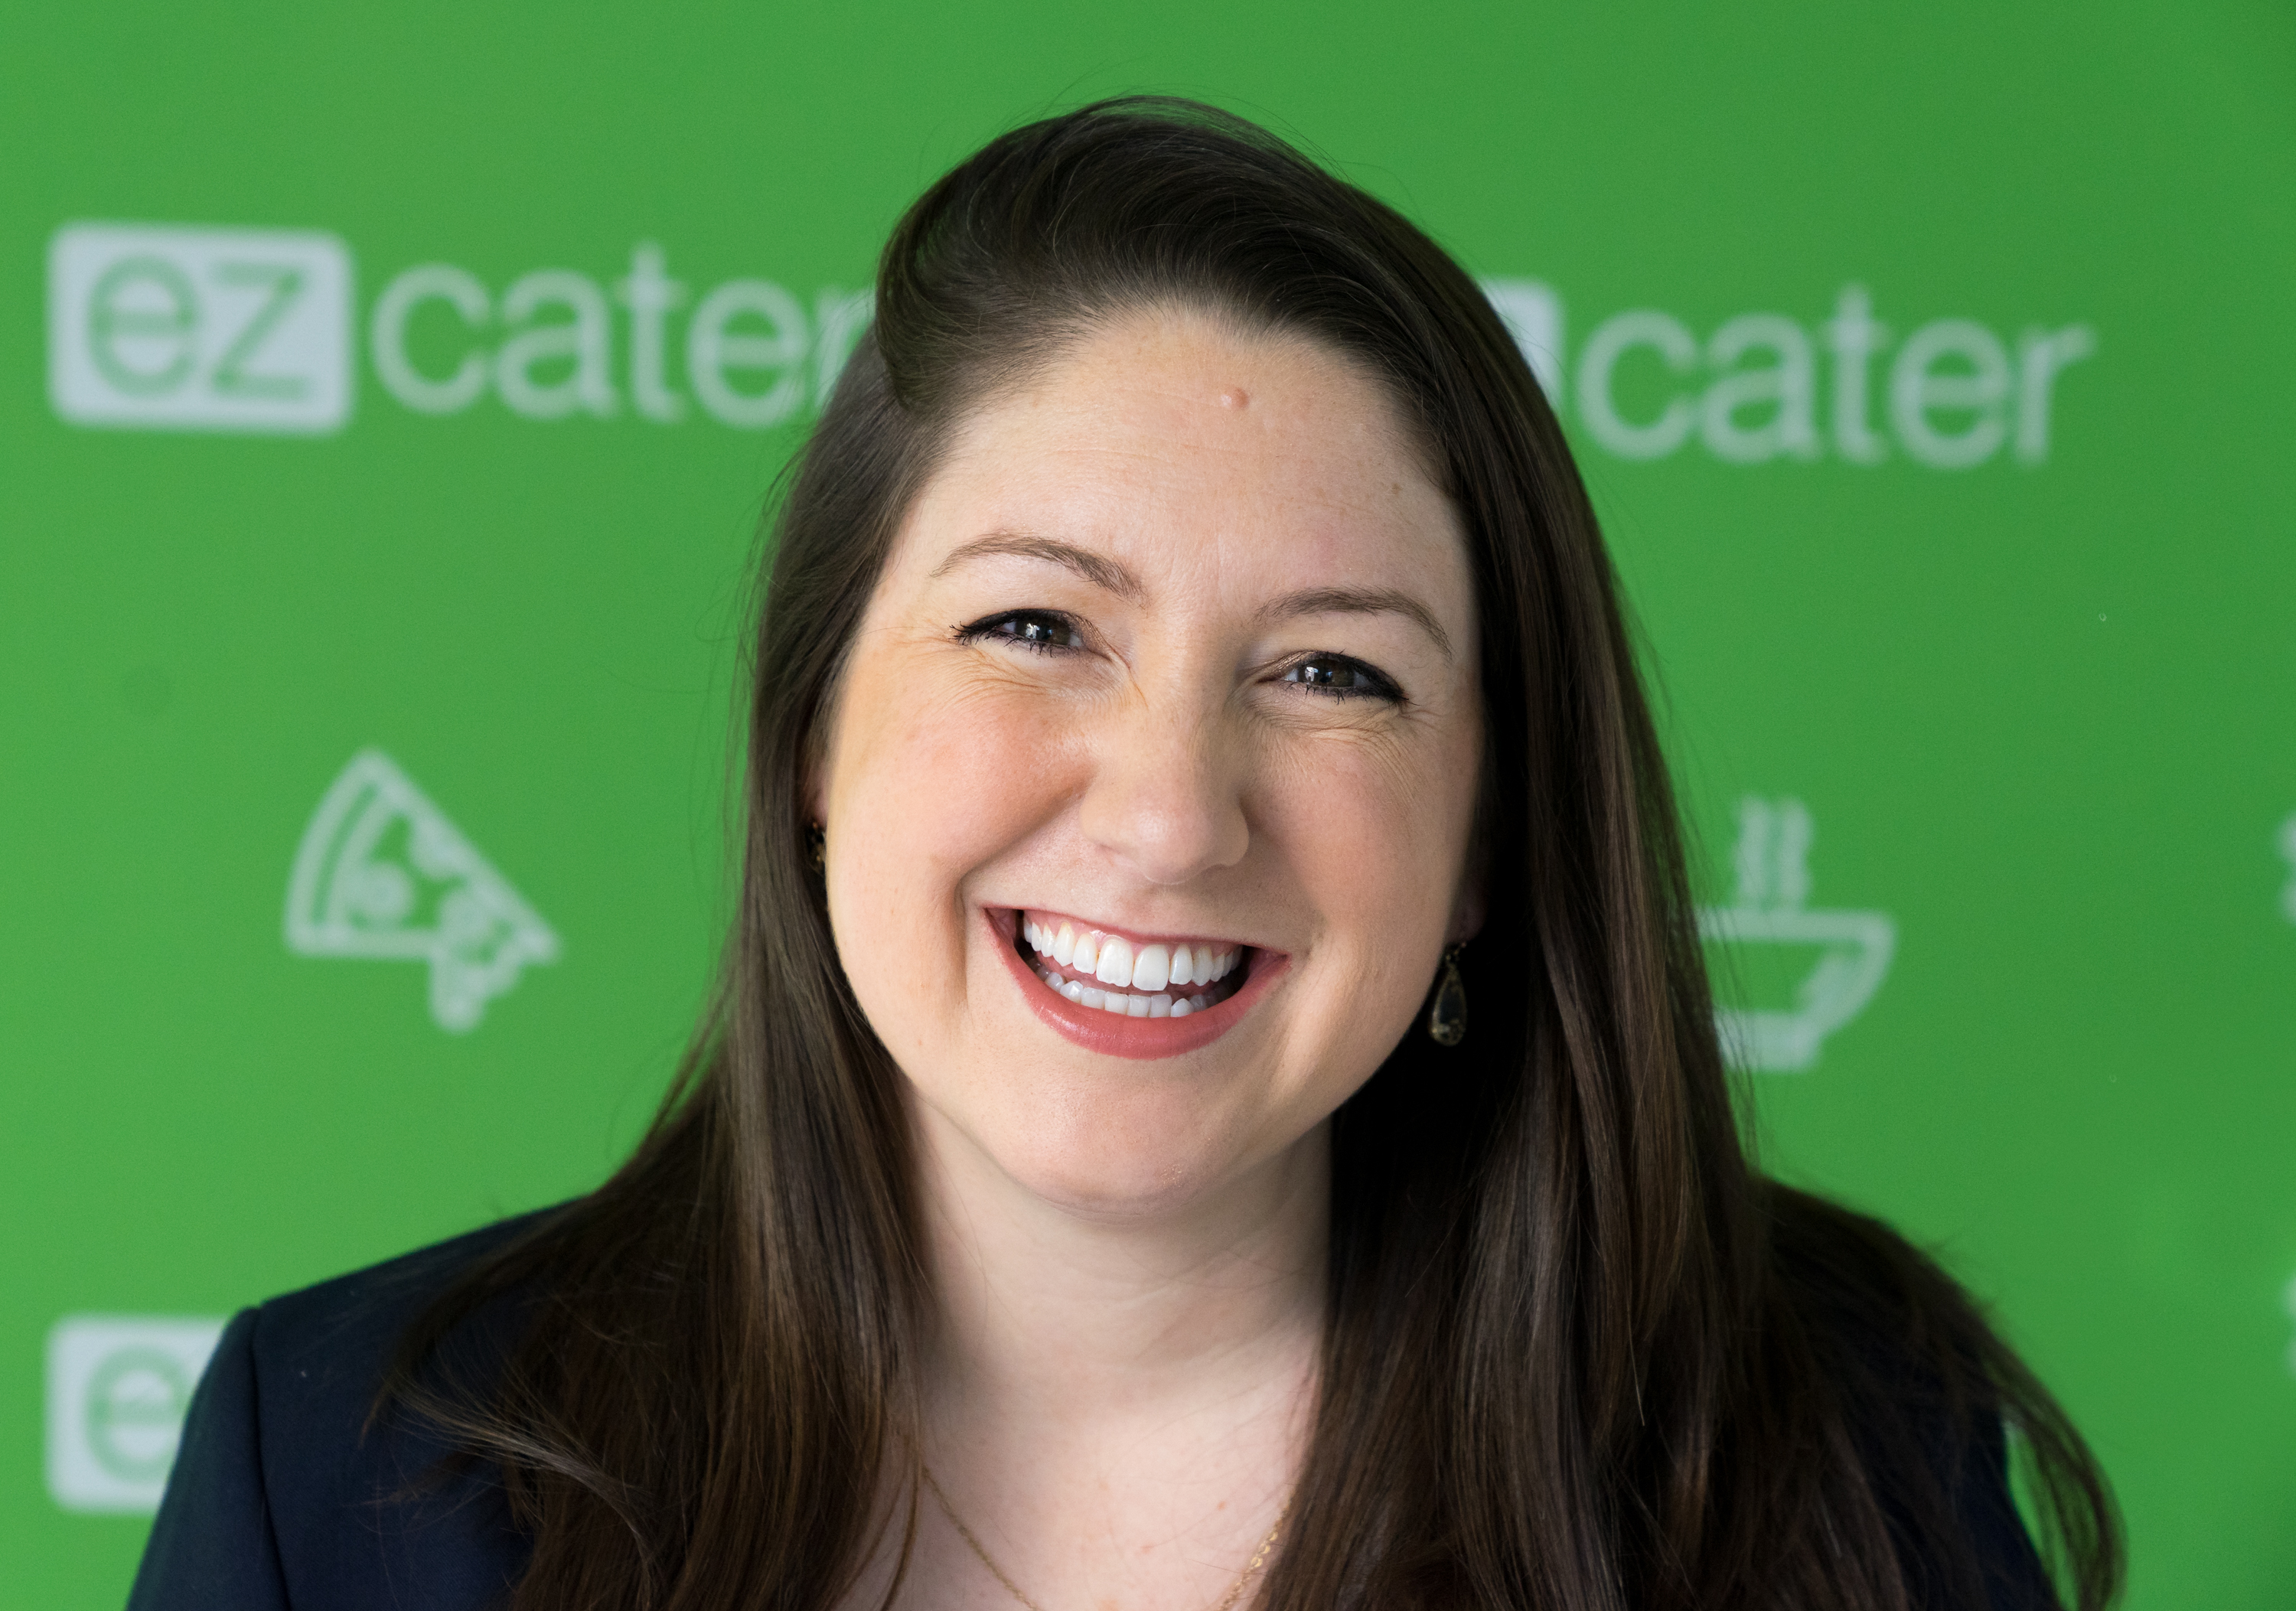 Genevieve Babineau, who serves as the catering growth and success manager at ezCater, taps into the big business of caring.